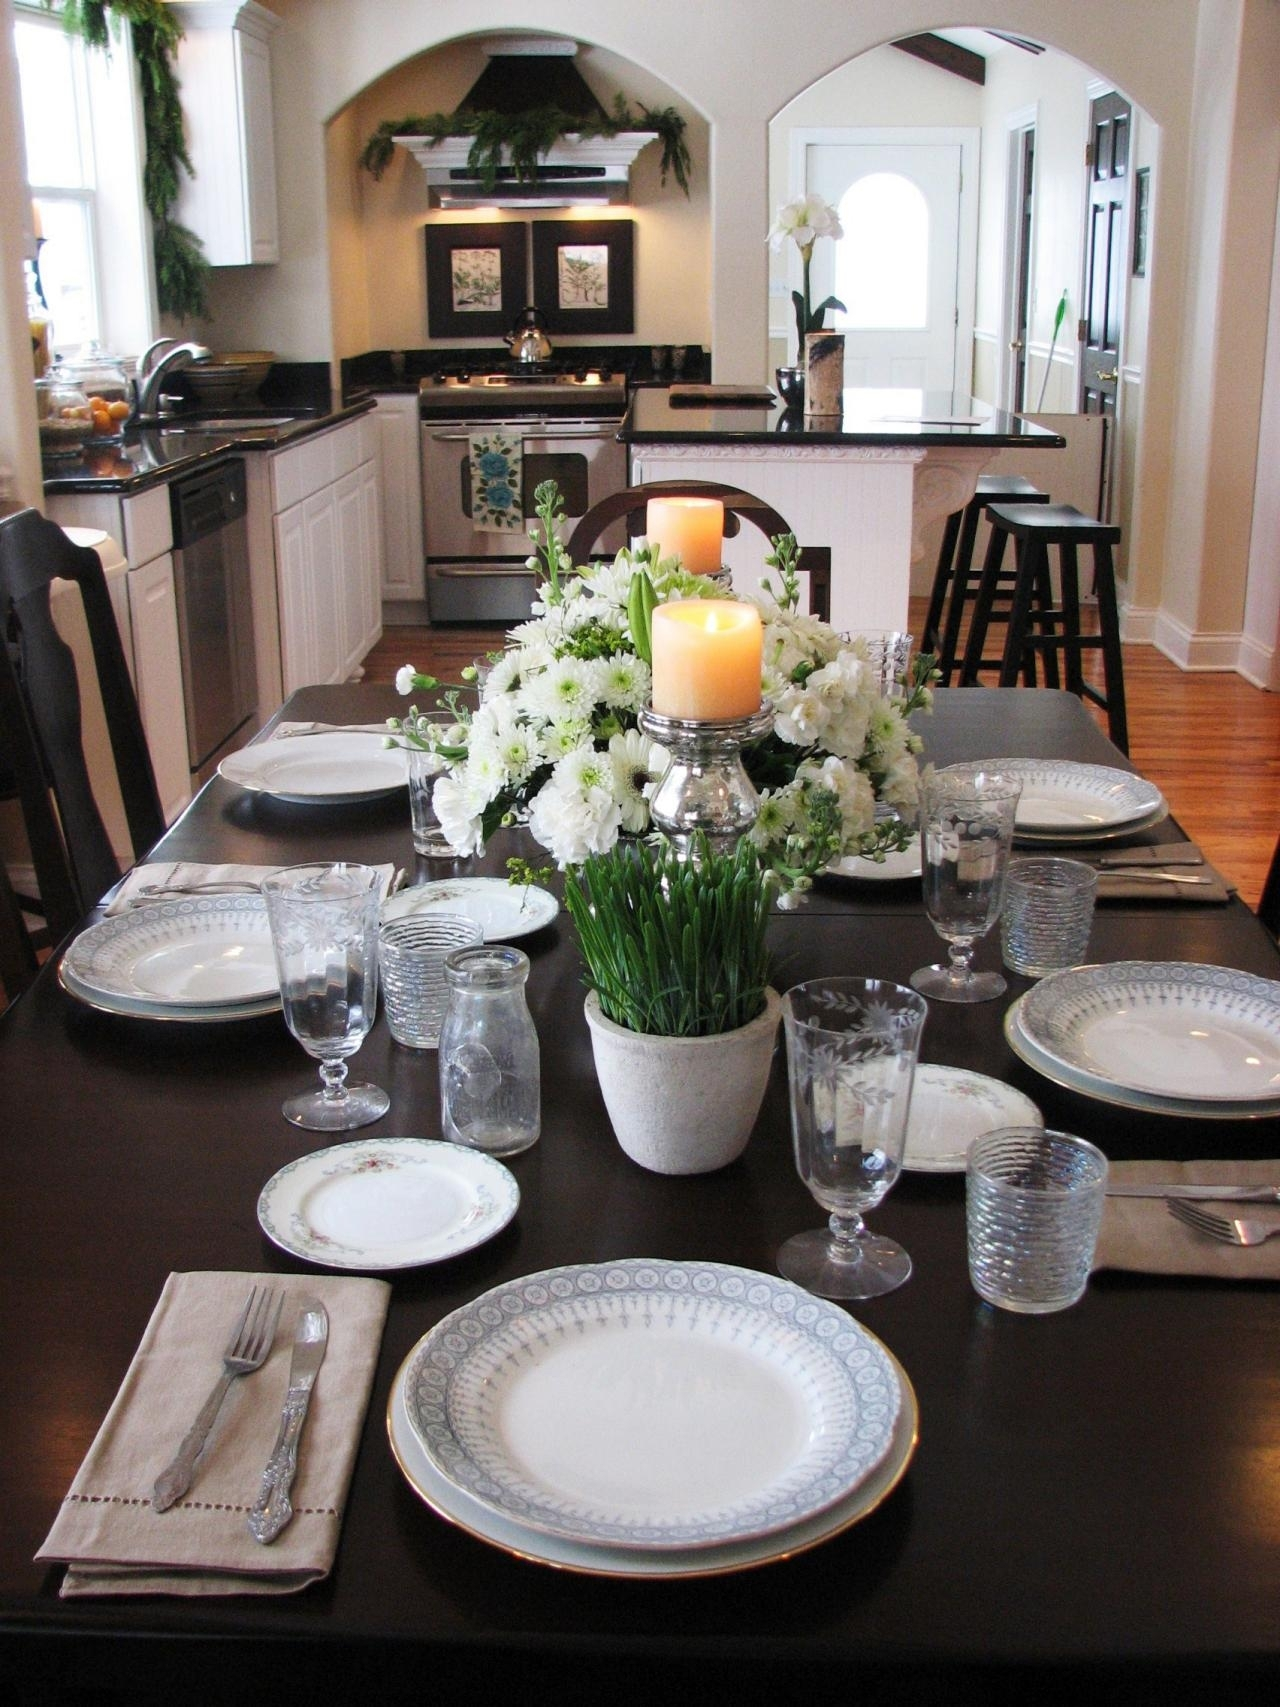 kitchen table centerpiece design ideas + hgtv pictures | hgtv